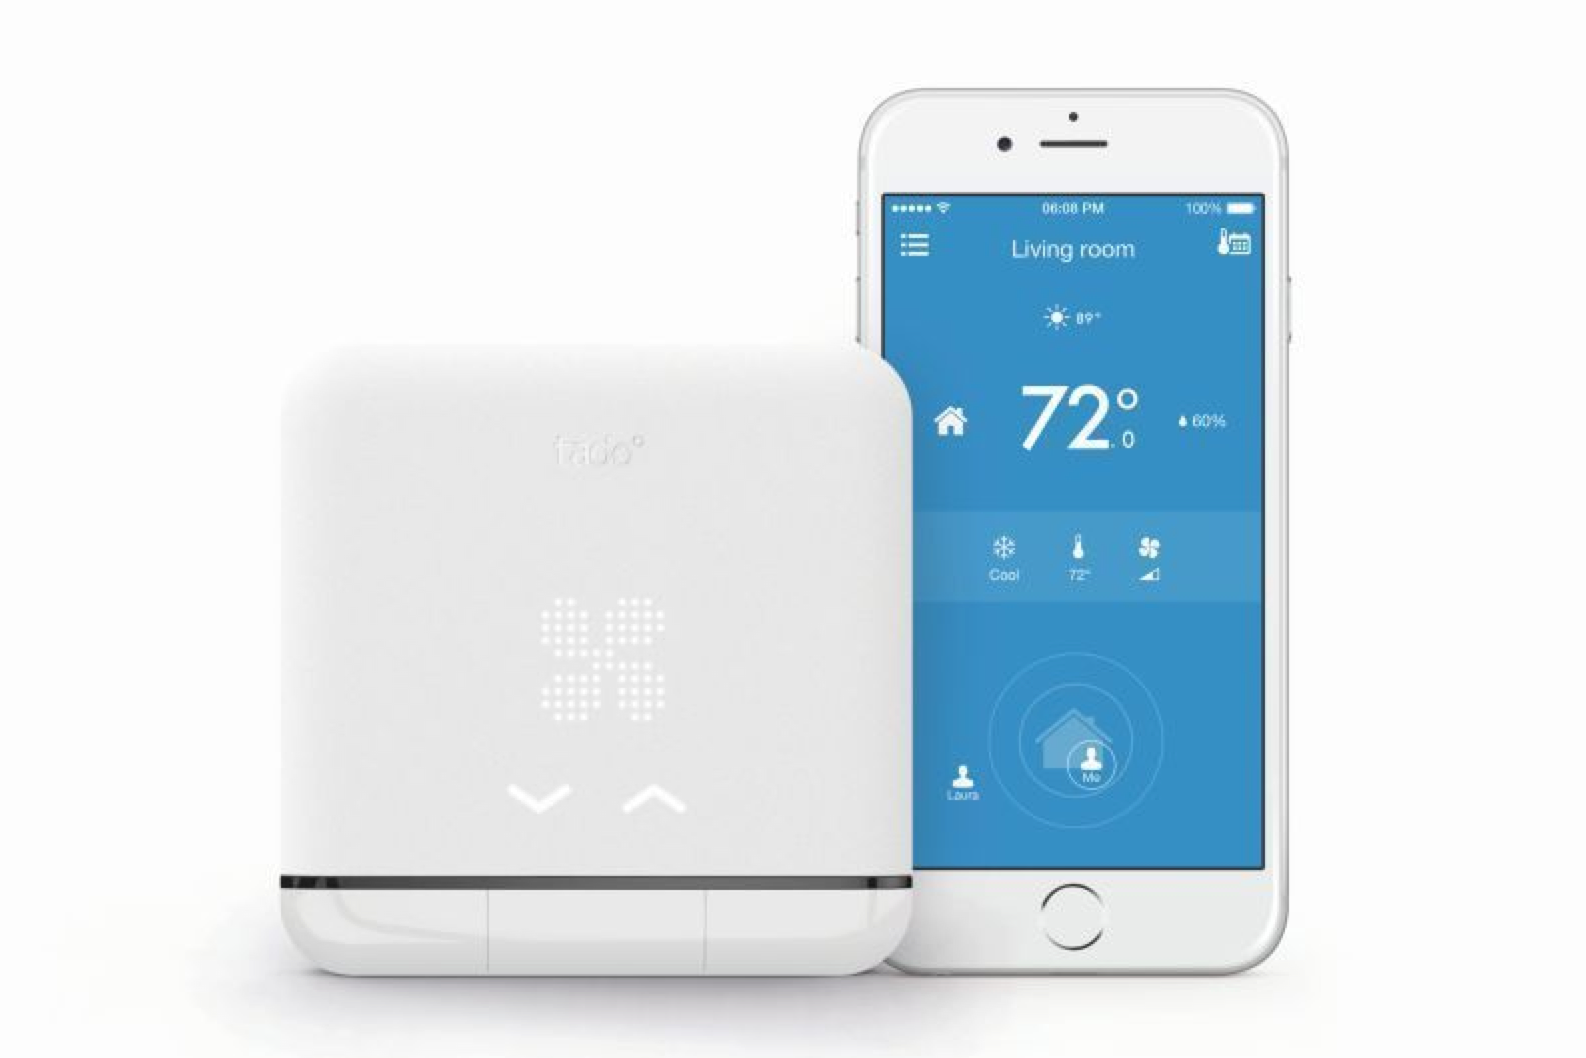 Tado's new smart AC system works with your cell phone and costs $200.